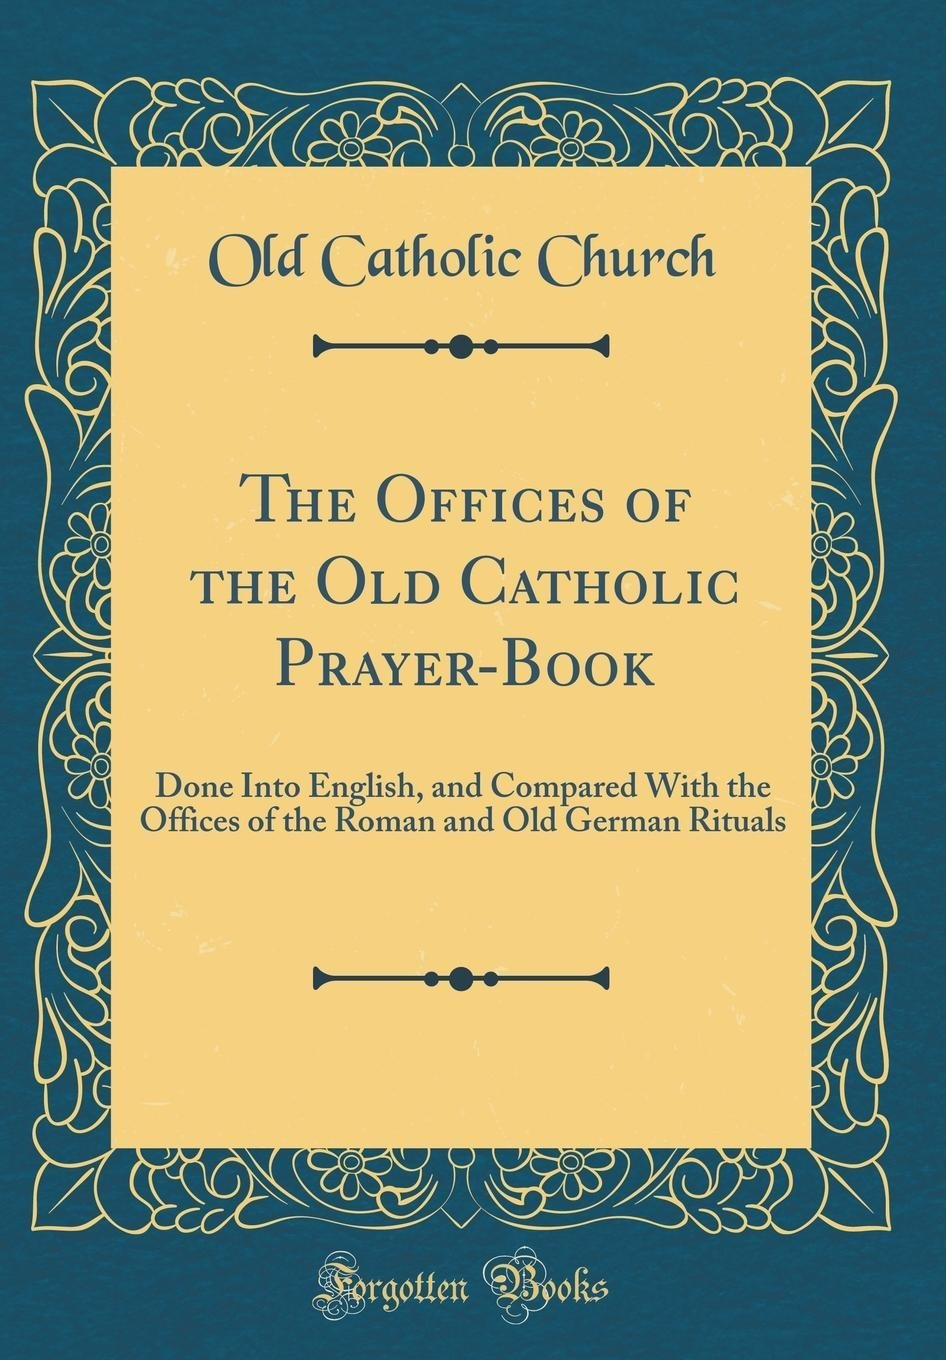 The Offices of the Old Catholic Prayer-Book: Done Into English, and Compared With the Offices of the Roman and Old German Rituals (Classic Reprint) PDF